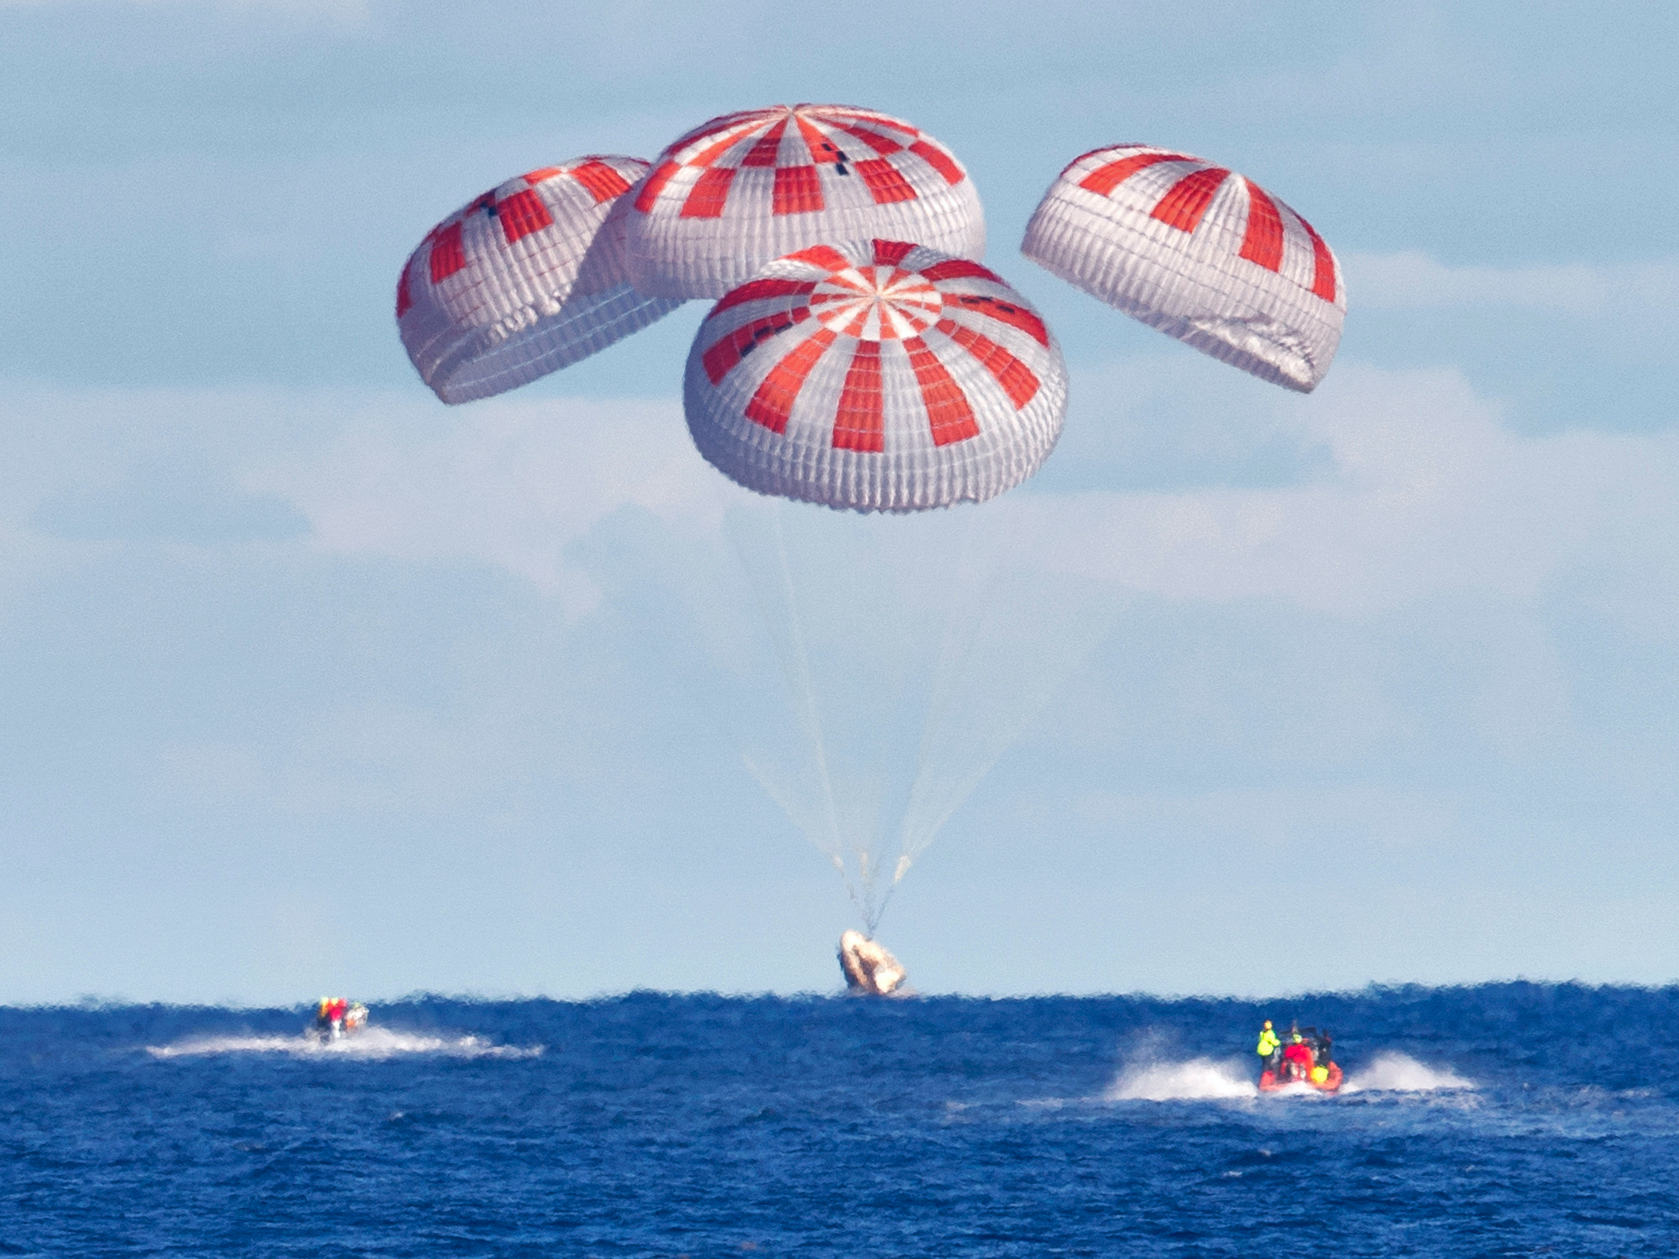 SpaceX Dragon astronauts aiming for rare splashdown off Florida coast